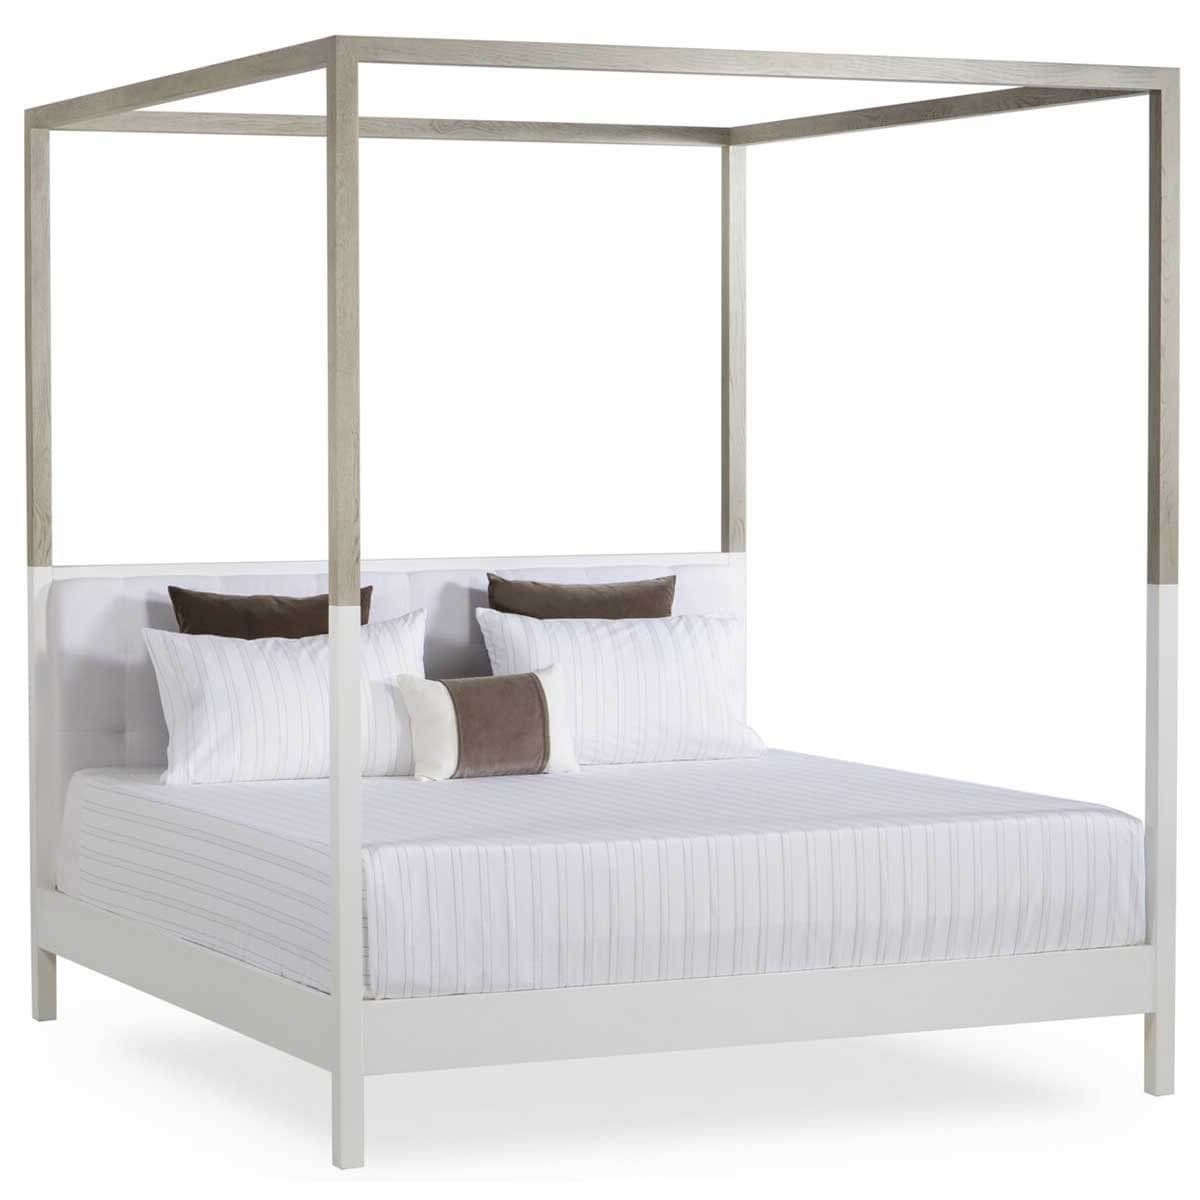 Coastal Modern Beach Four Poster Bed Shop Jill Shevlin Design